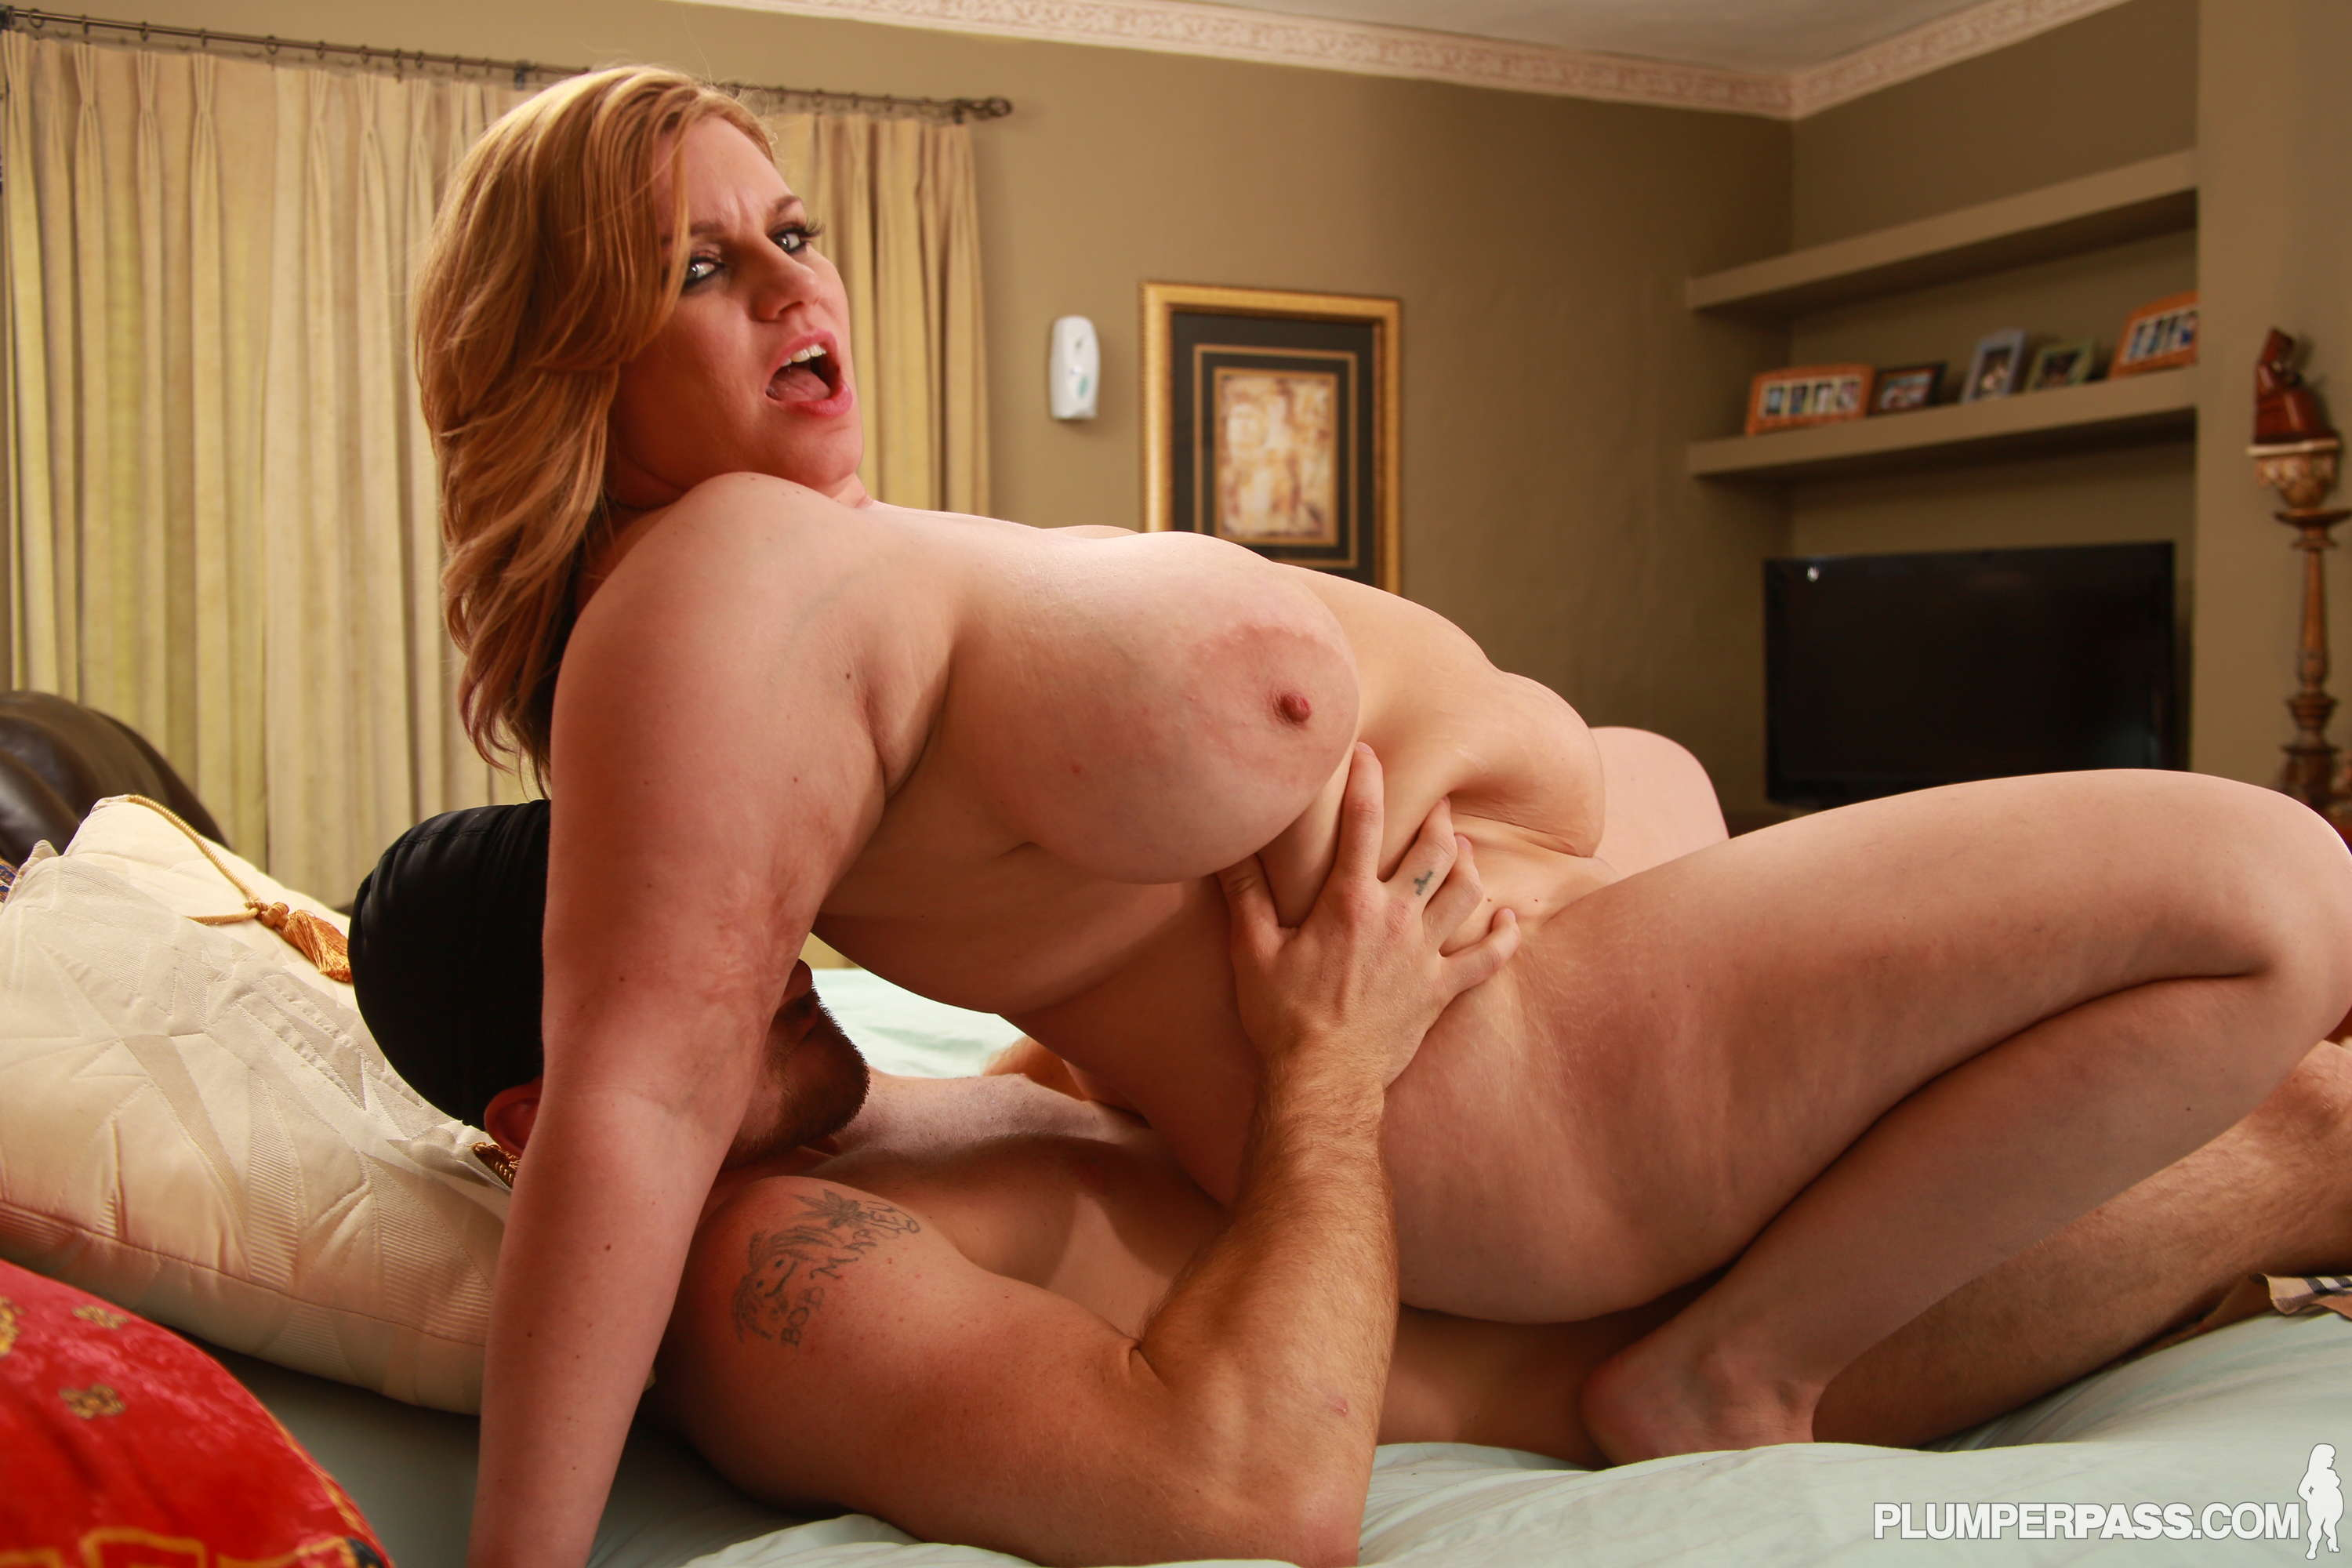 Hot blonde bbw fucking